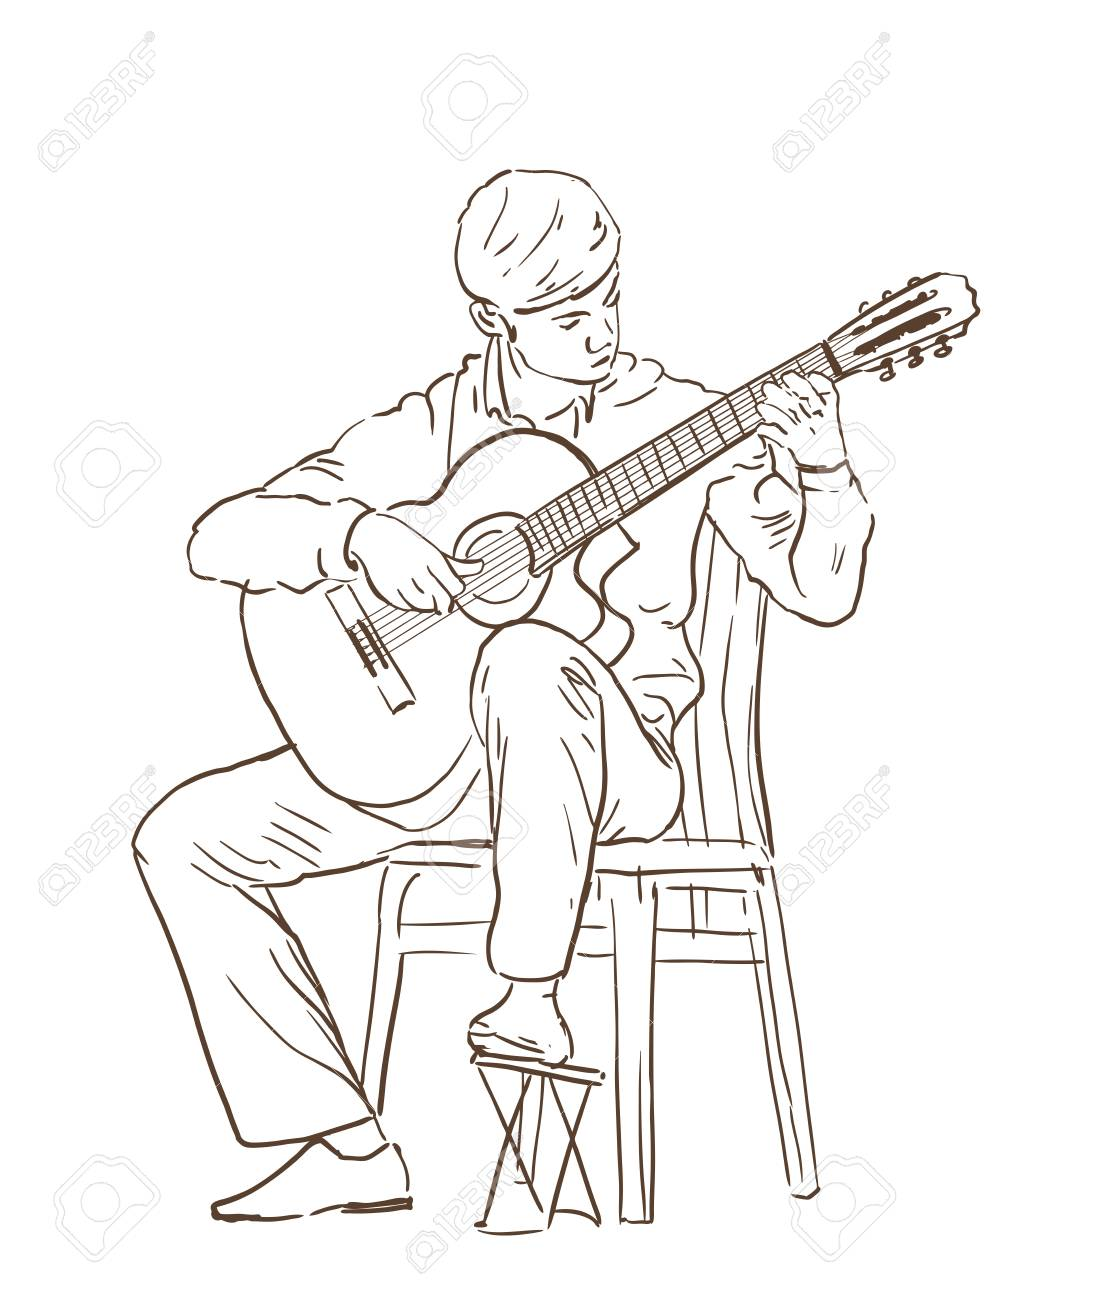 classical guitar chair hanging online india young man playing cutaway sitting on a vector hand drawn illustration line sketch